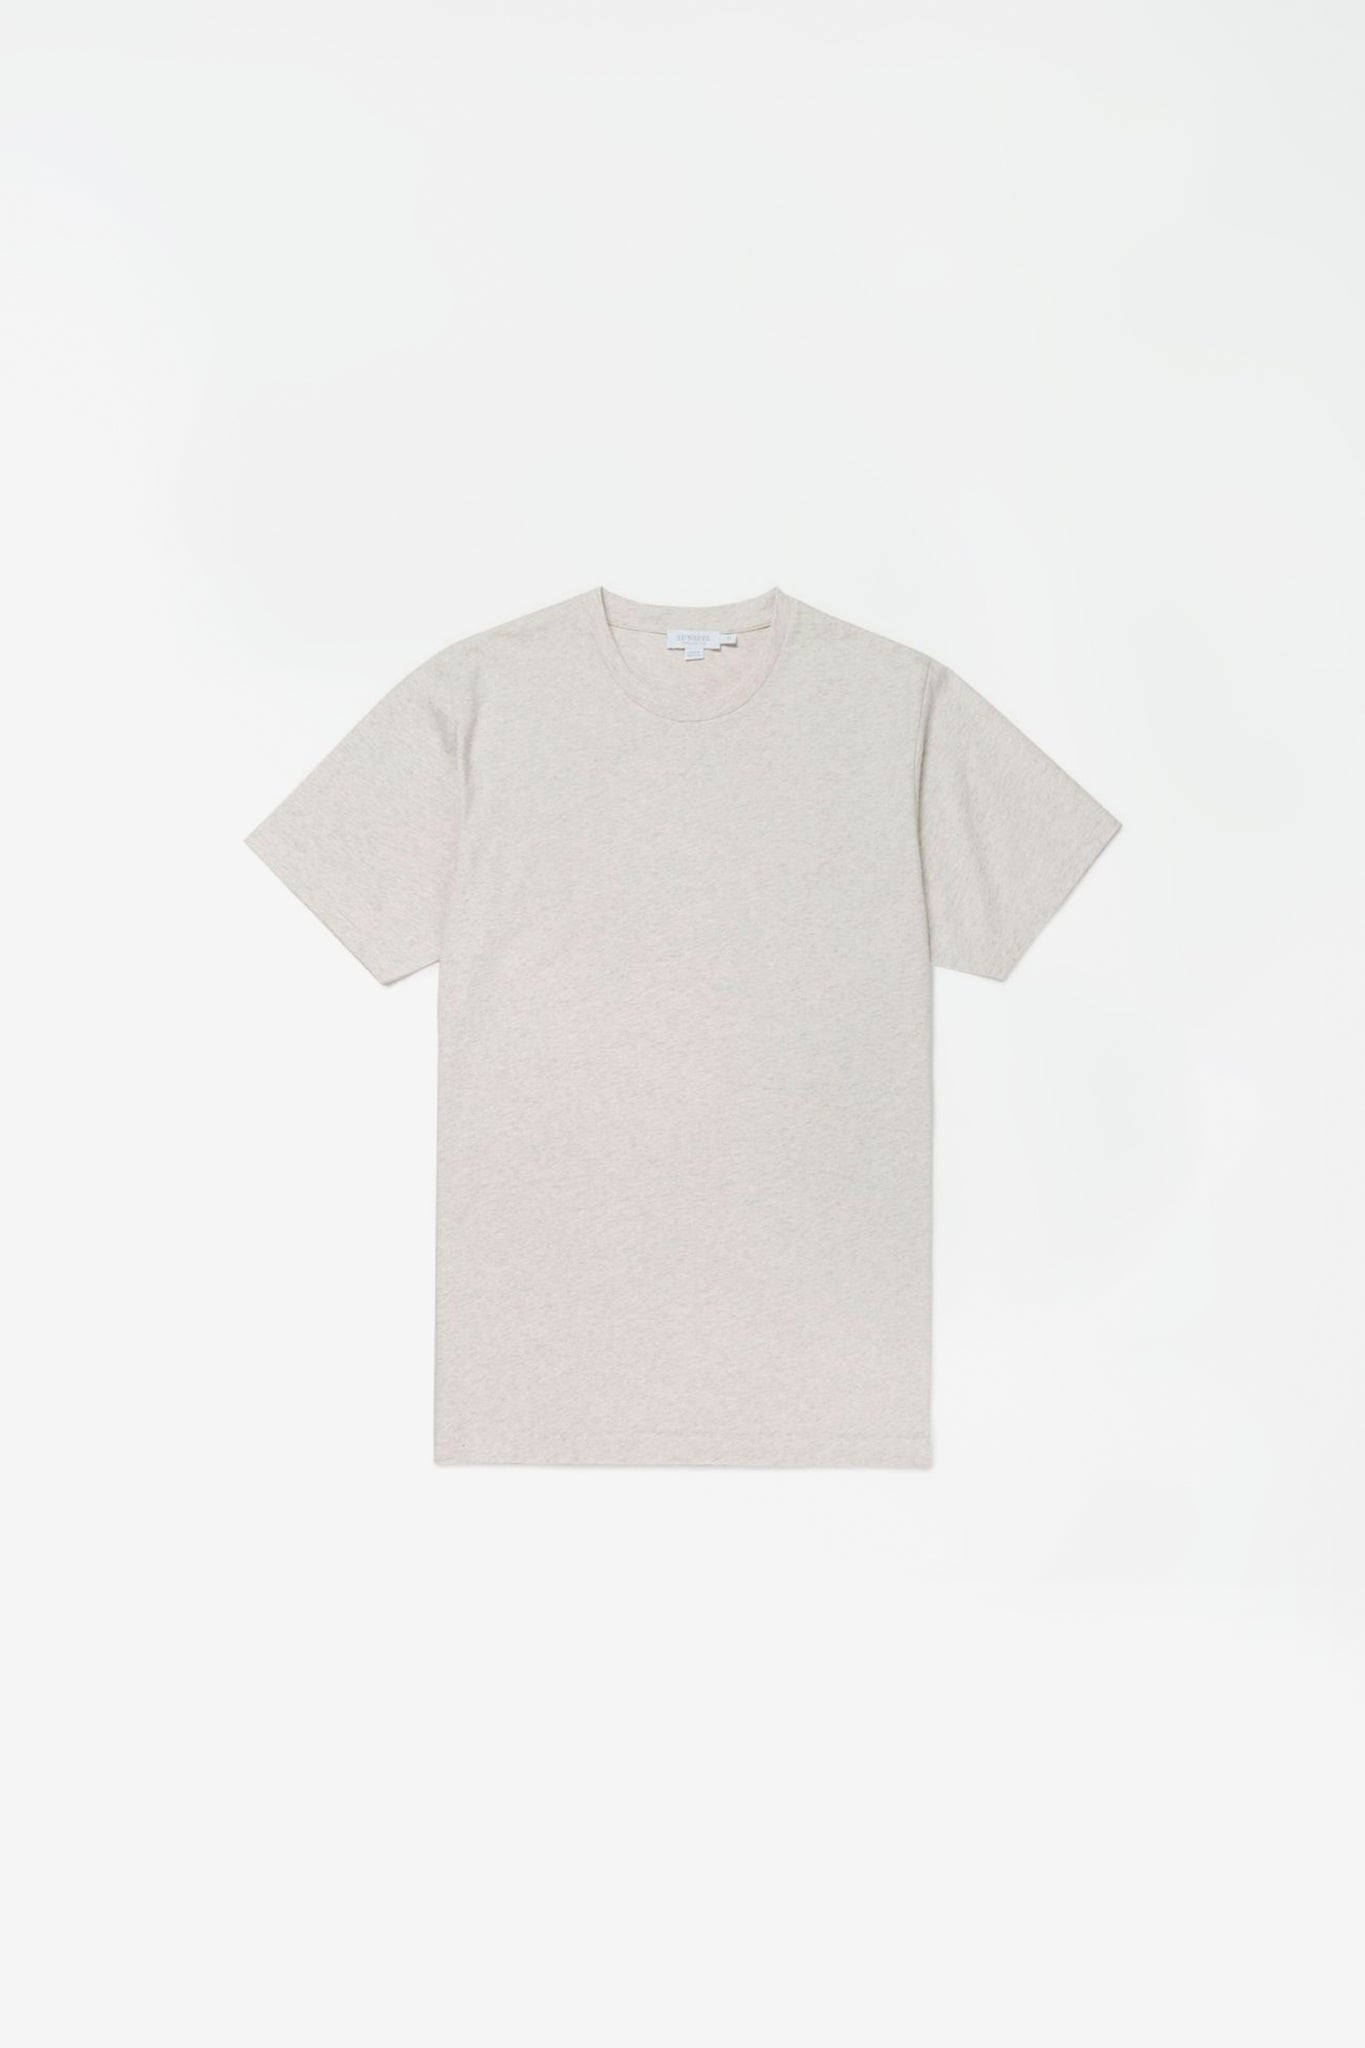 Organic cotton riviera t-shirt archive white melange